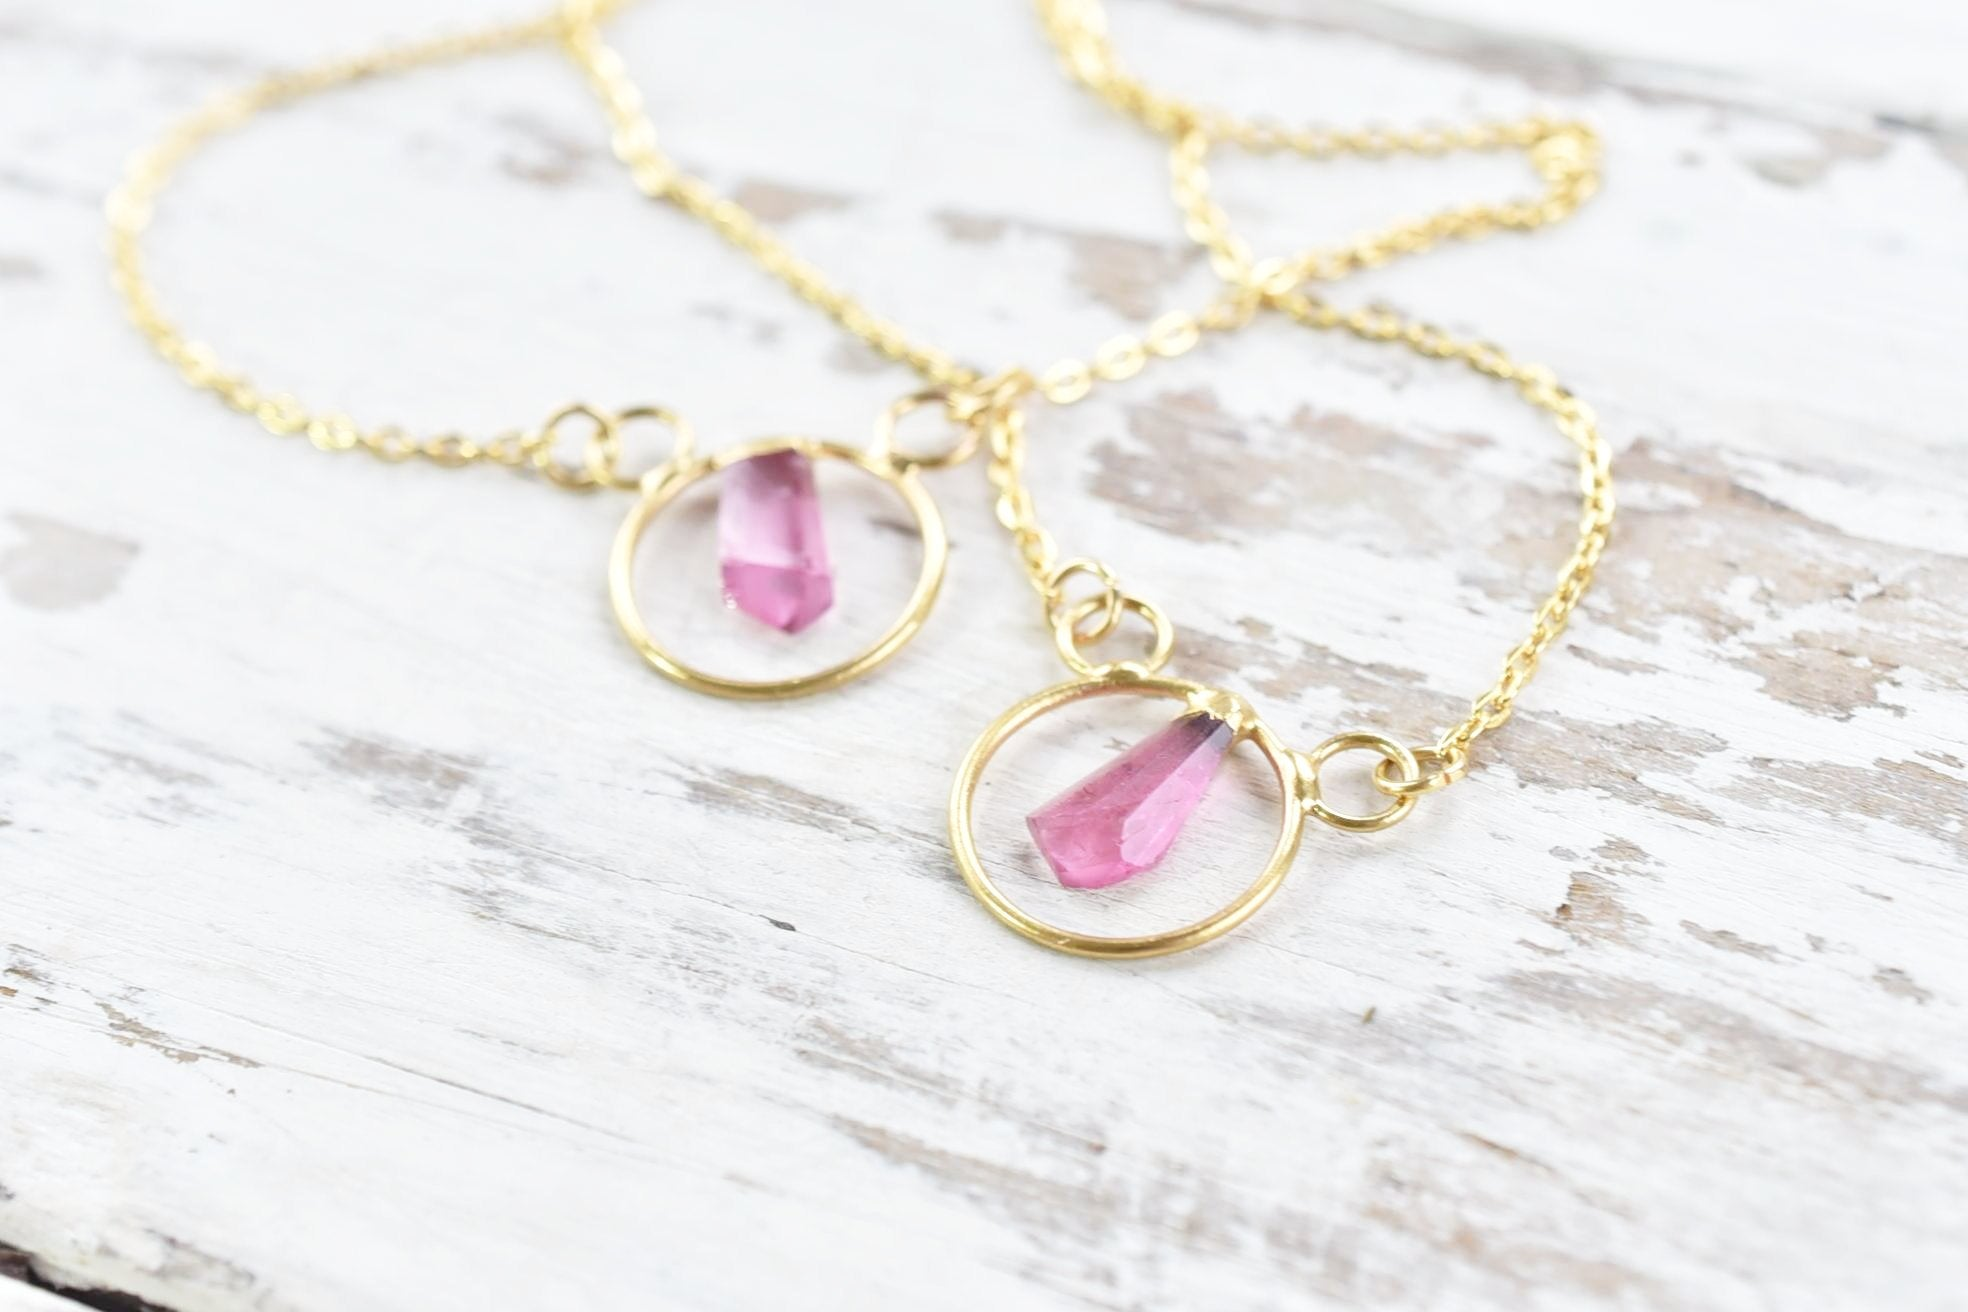 PINK TOURMALINE CRYSTAL 'HOOP' NECKLACE IN GOLD